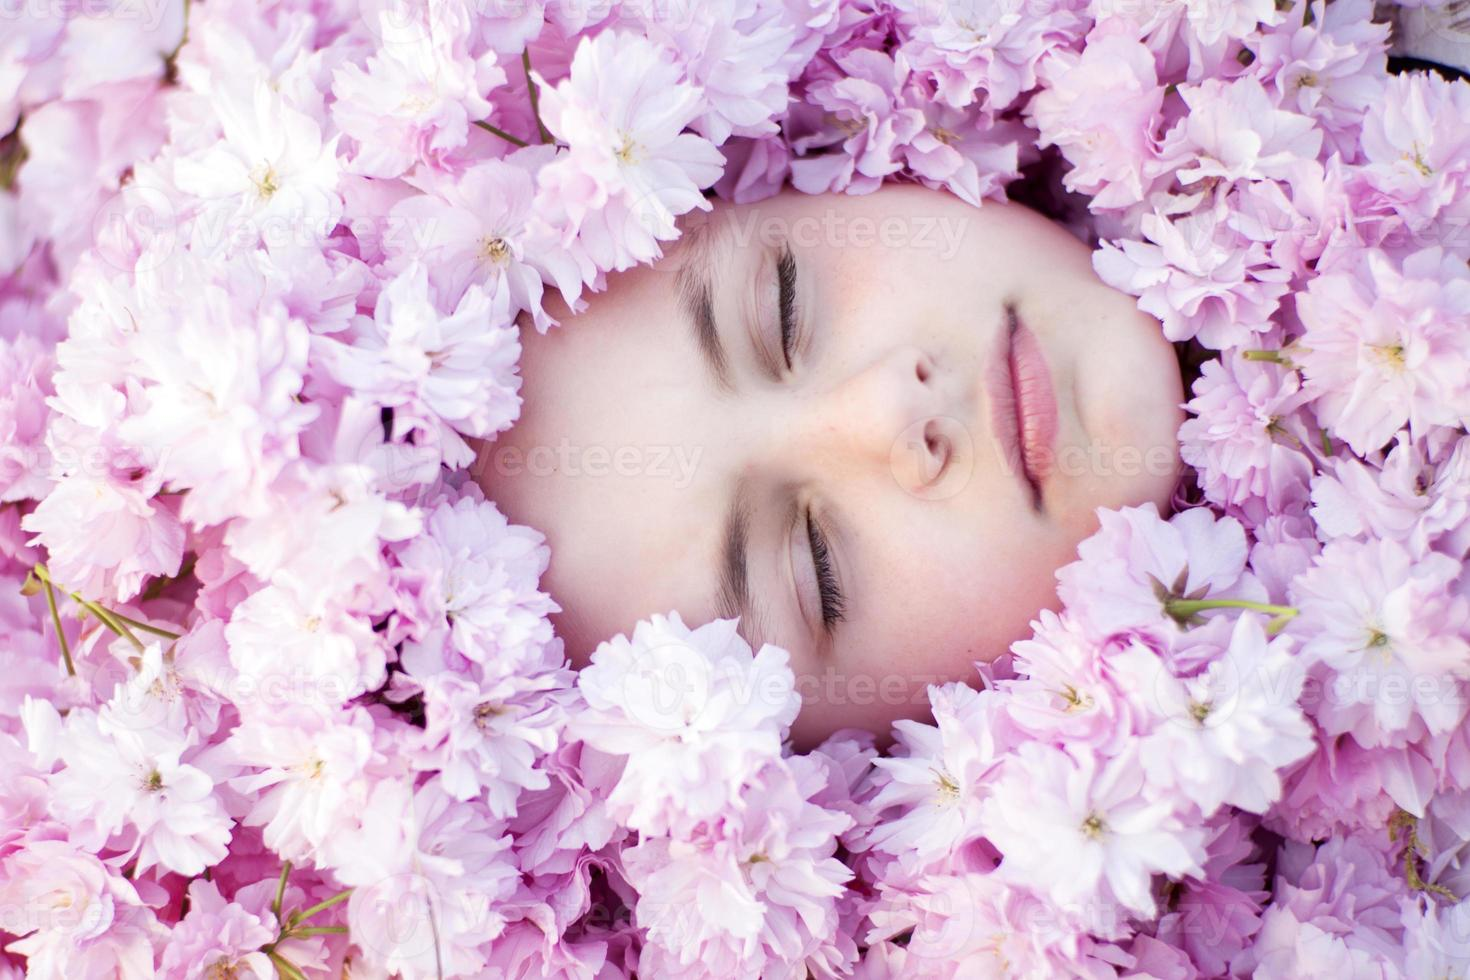 Face of small girl among flowers photo